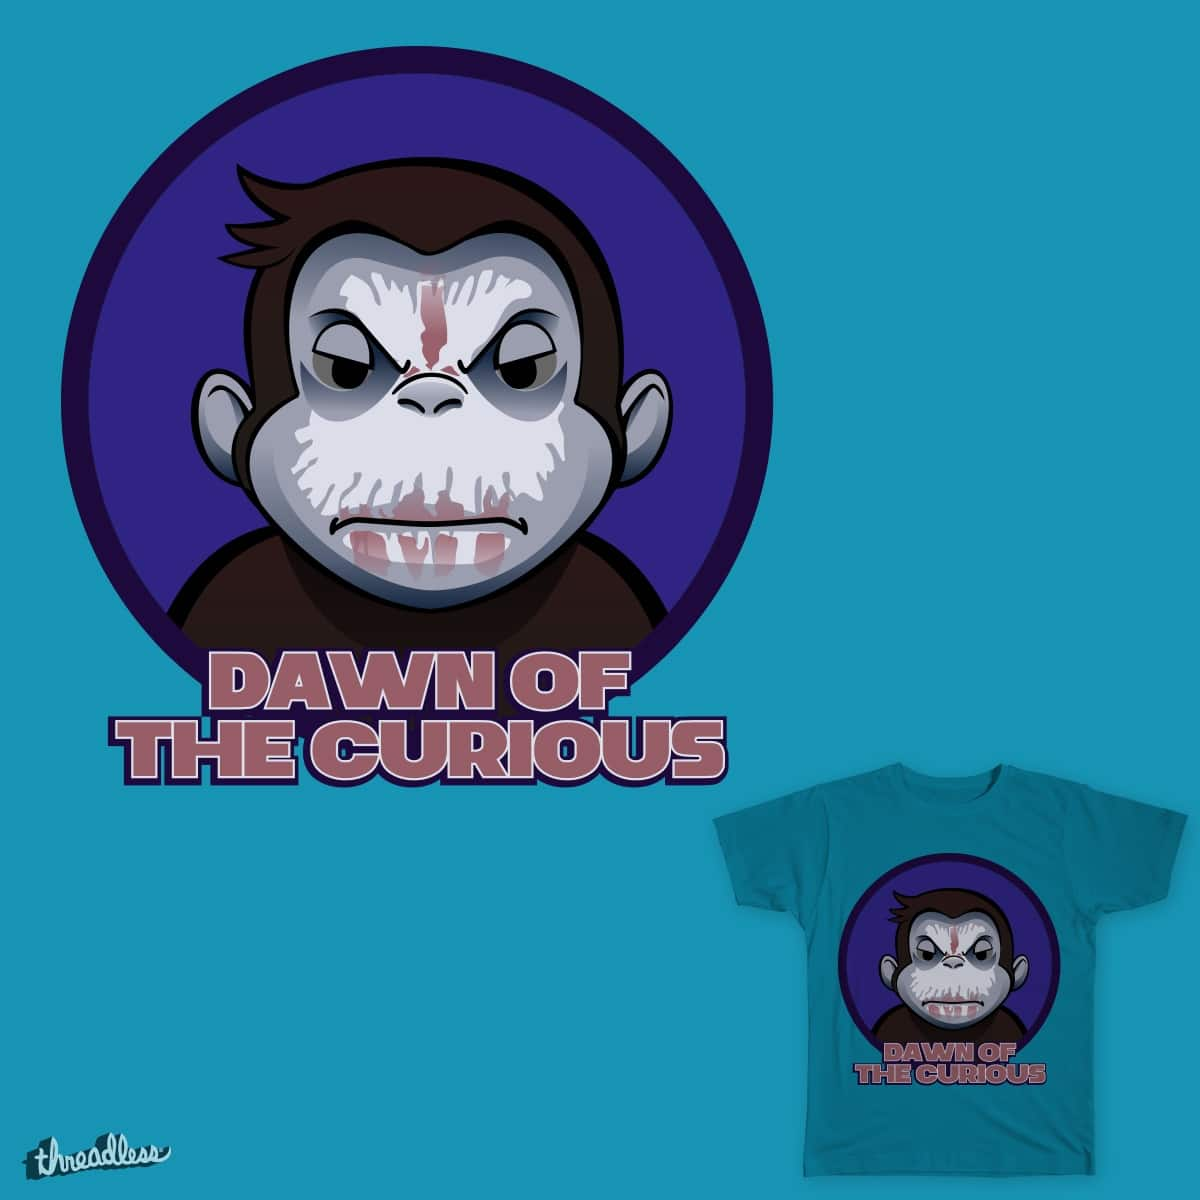 Dawn of the curious by manugap84 on Threadless